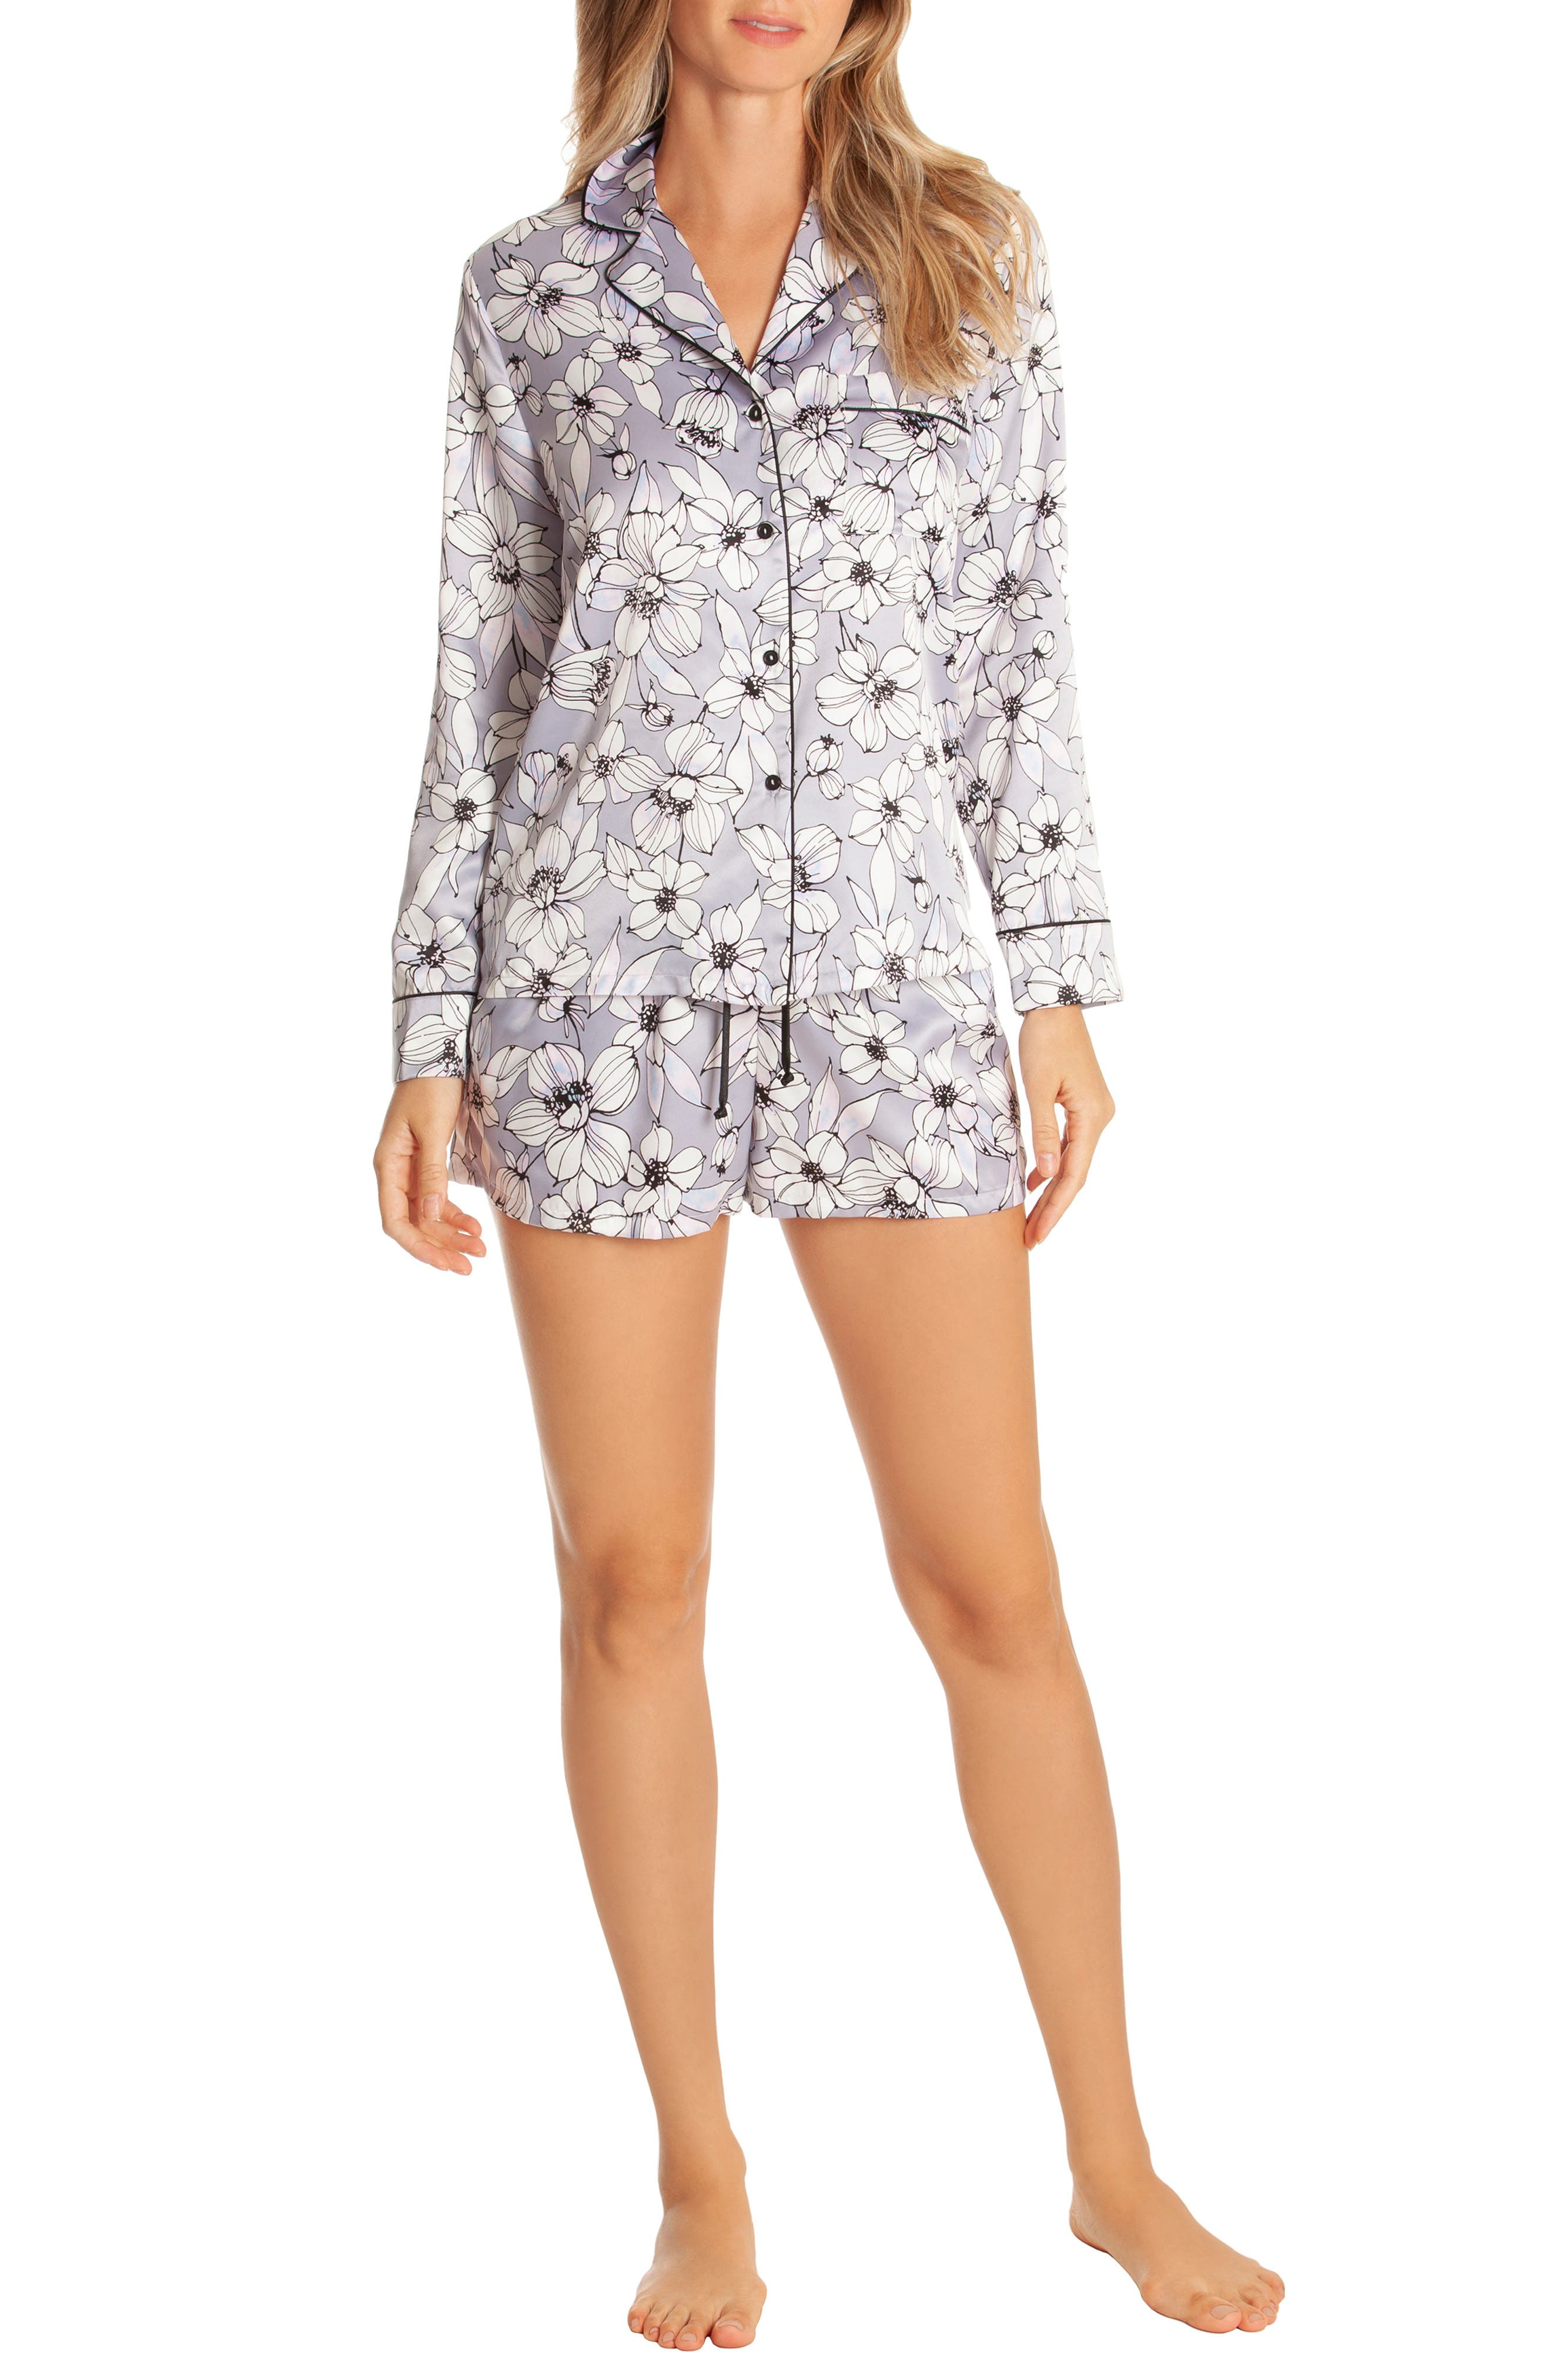 IN BLOOM BY JONQUIL, Look of Love Short Pajamas, Alternate thumbnail 5, color, GREY-RISA FLORAL